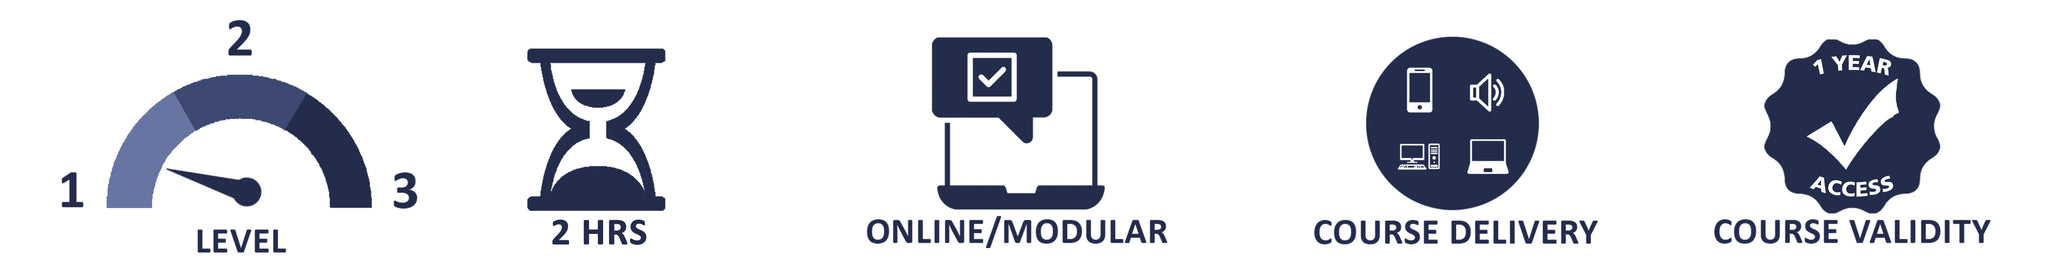 Care Certificate Standard 12 + Train the Trainer + Trainer Pack - Online CPD Course - The Mandatory Training Group UK -